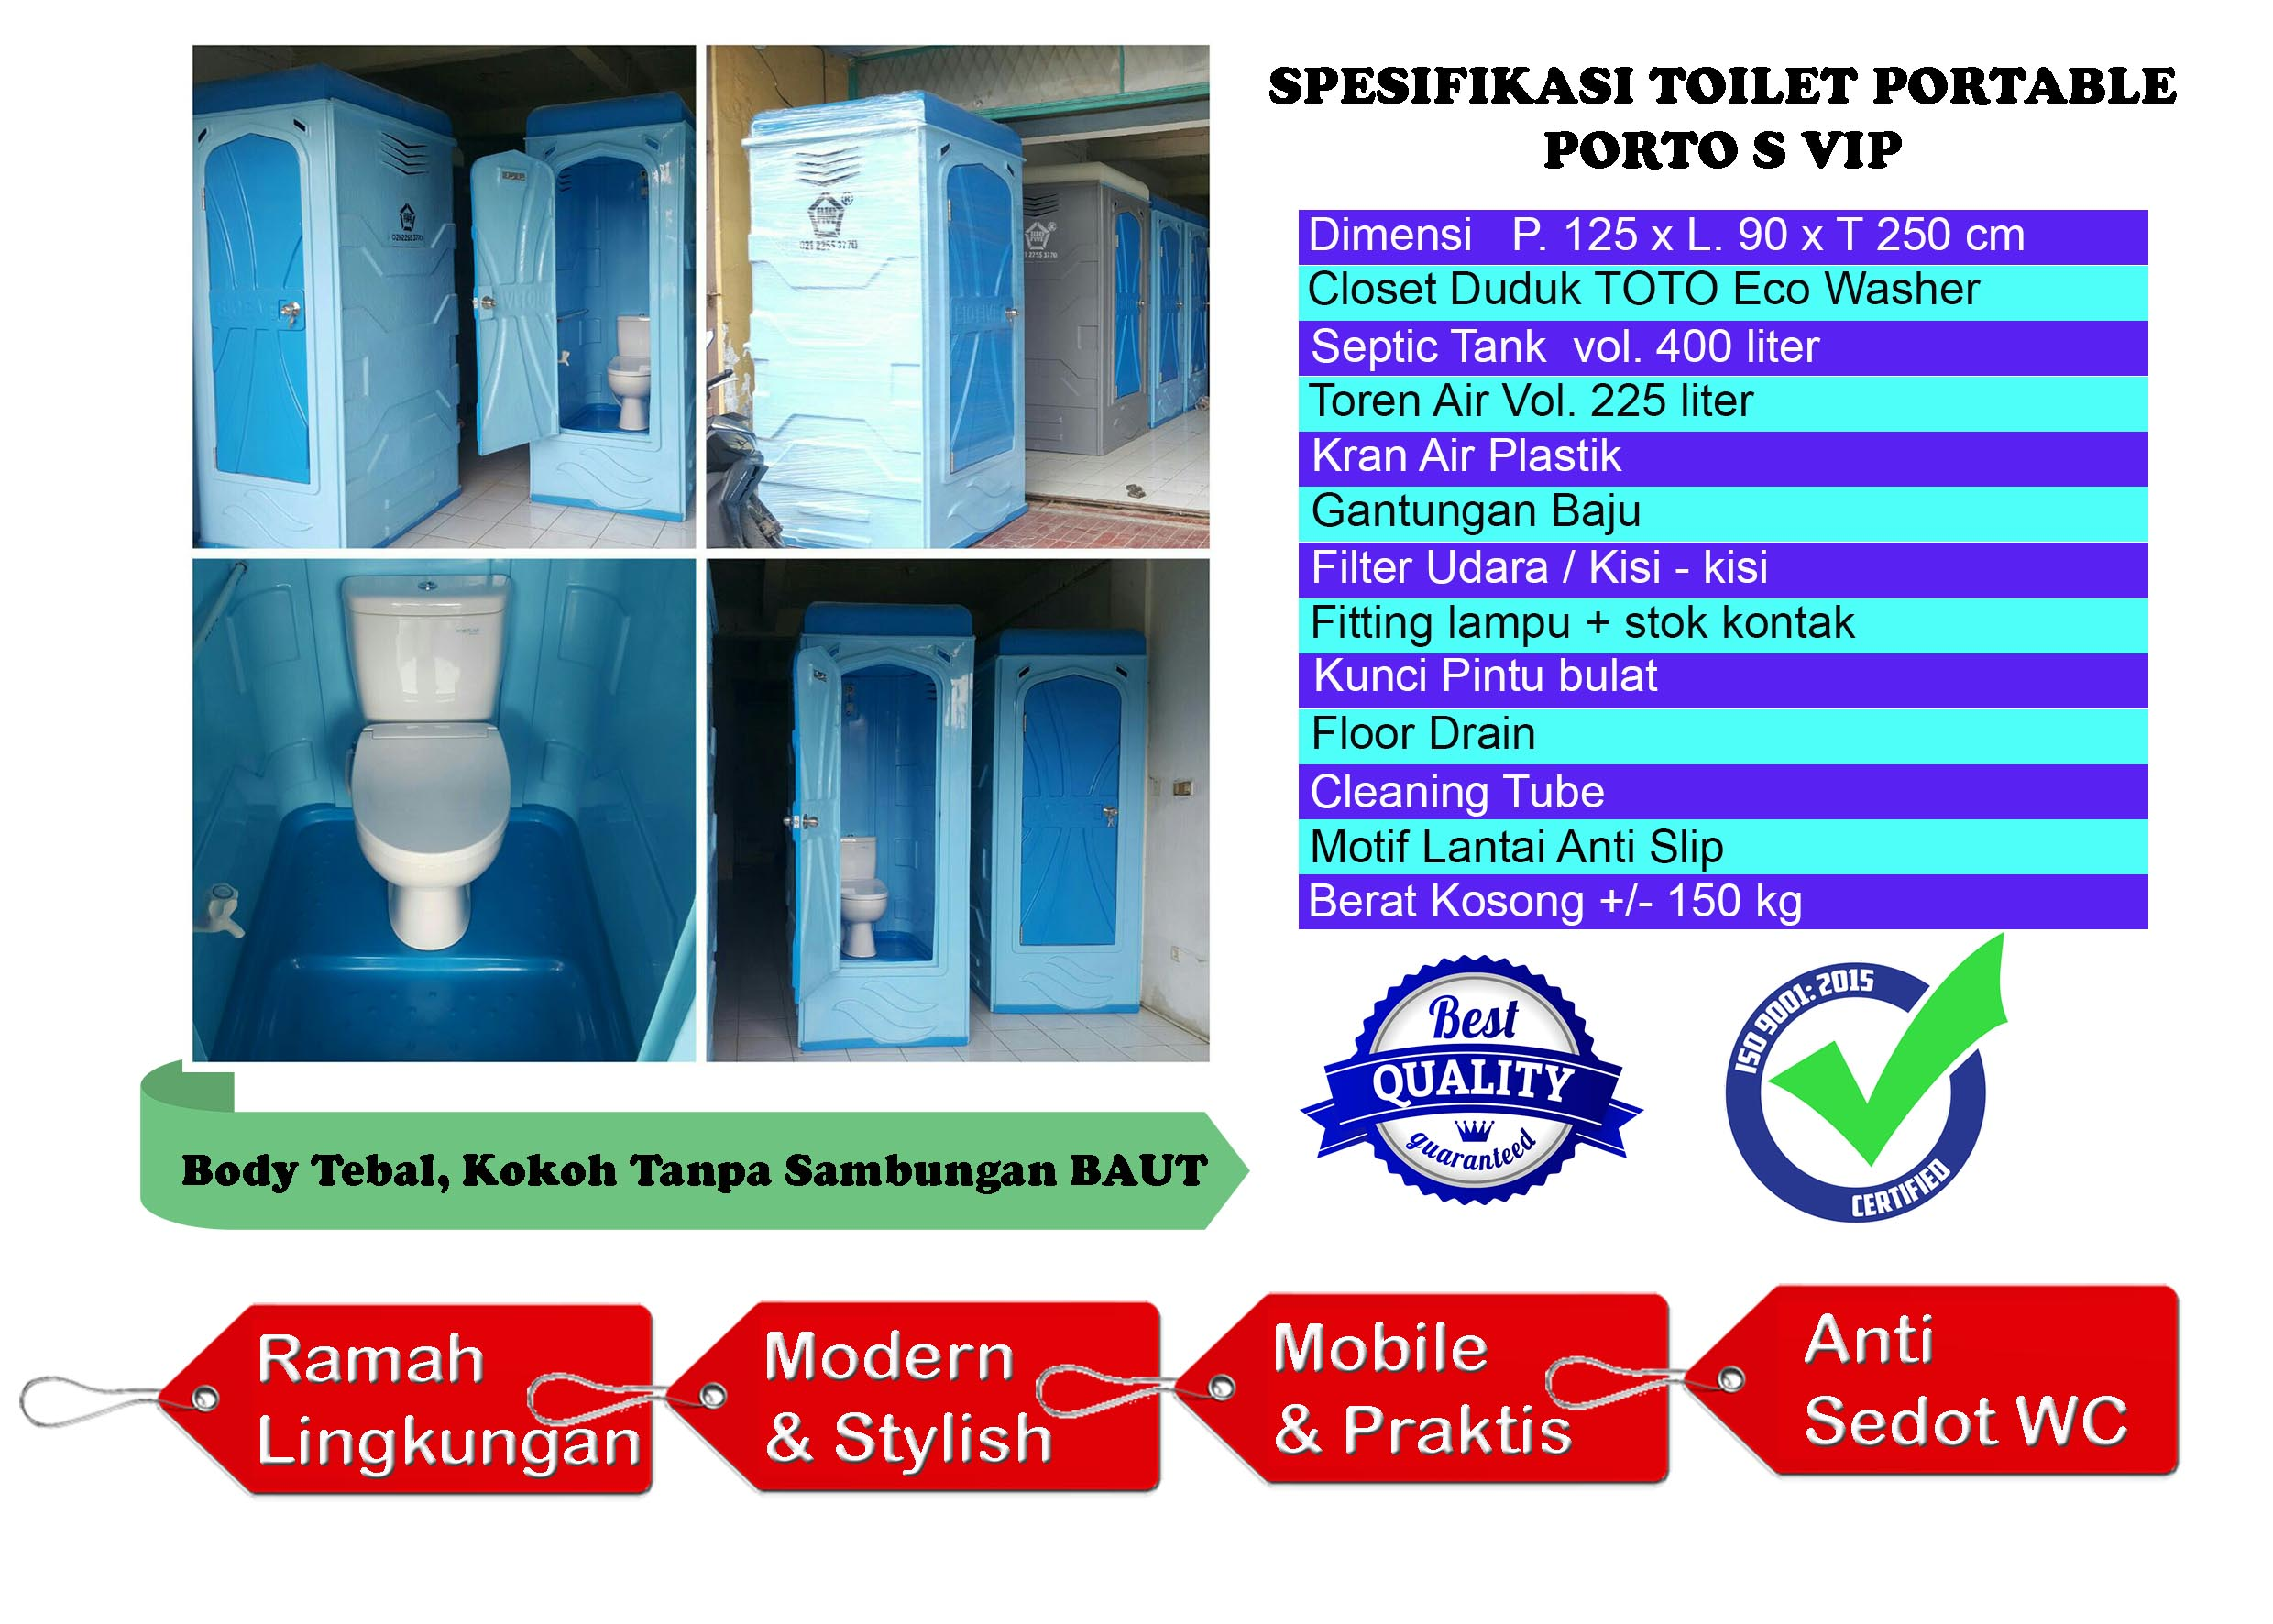 Daftar Harga Toilet Portable Jual Septic Tank Toilet Portable Jasa Sewa Toilet Grease Trap Tangki Air Fiberglass